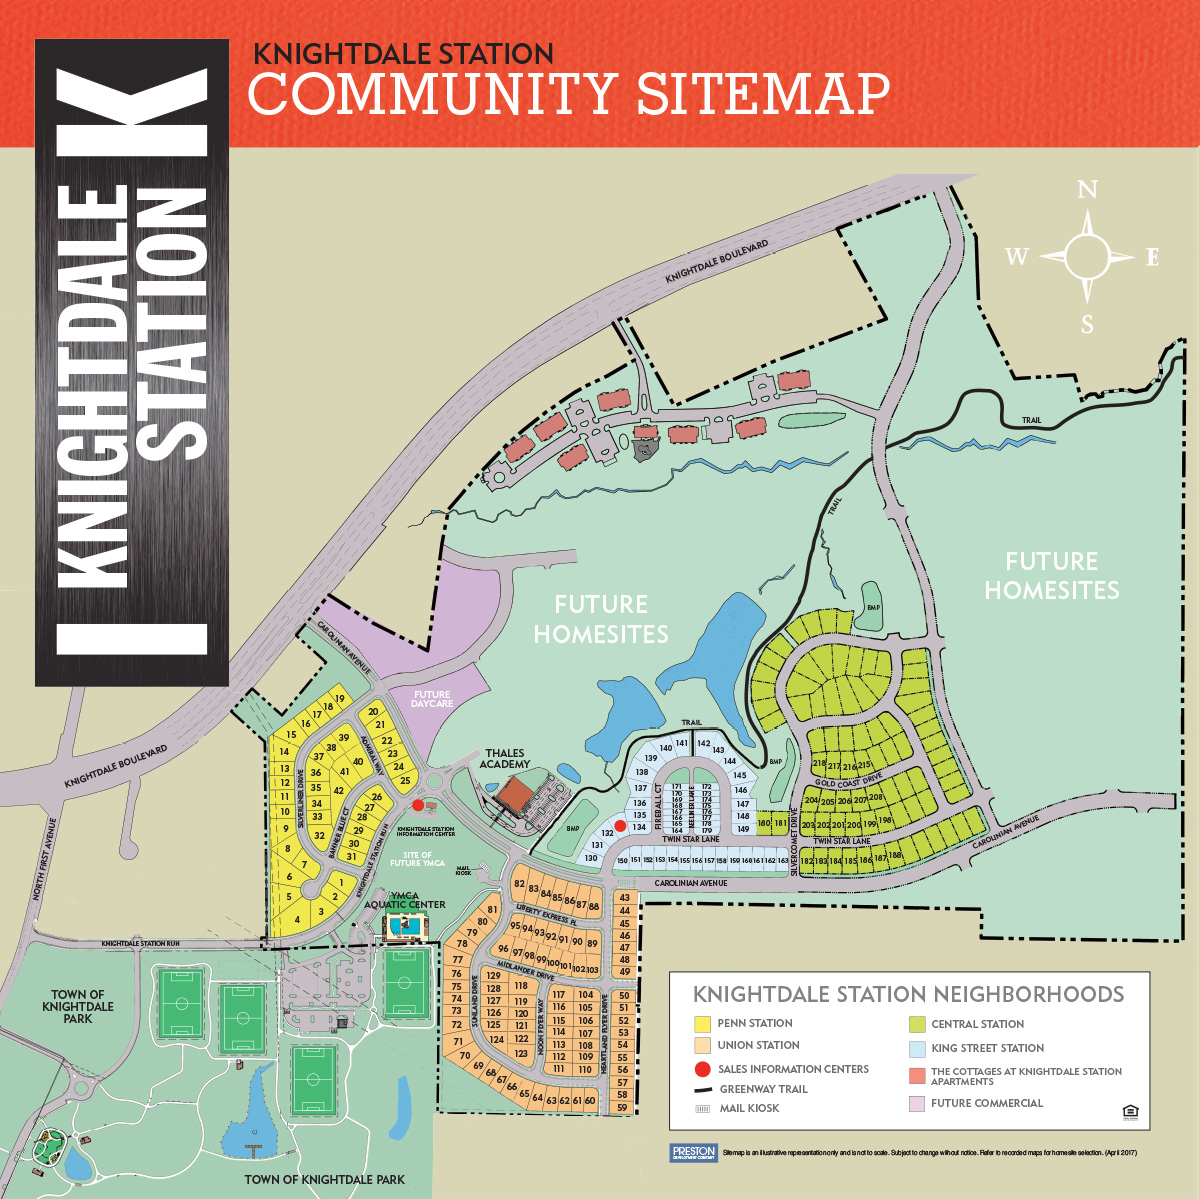 Knightdale Station Community Sitemap